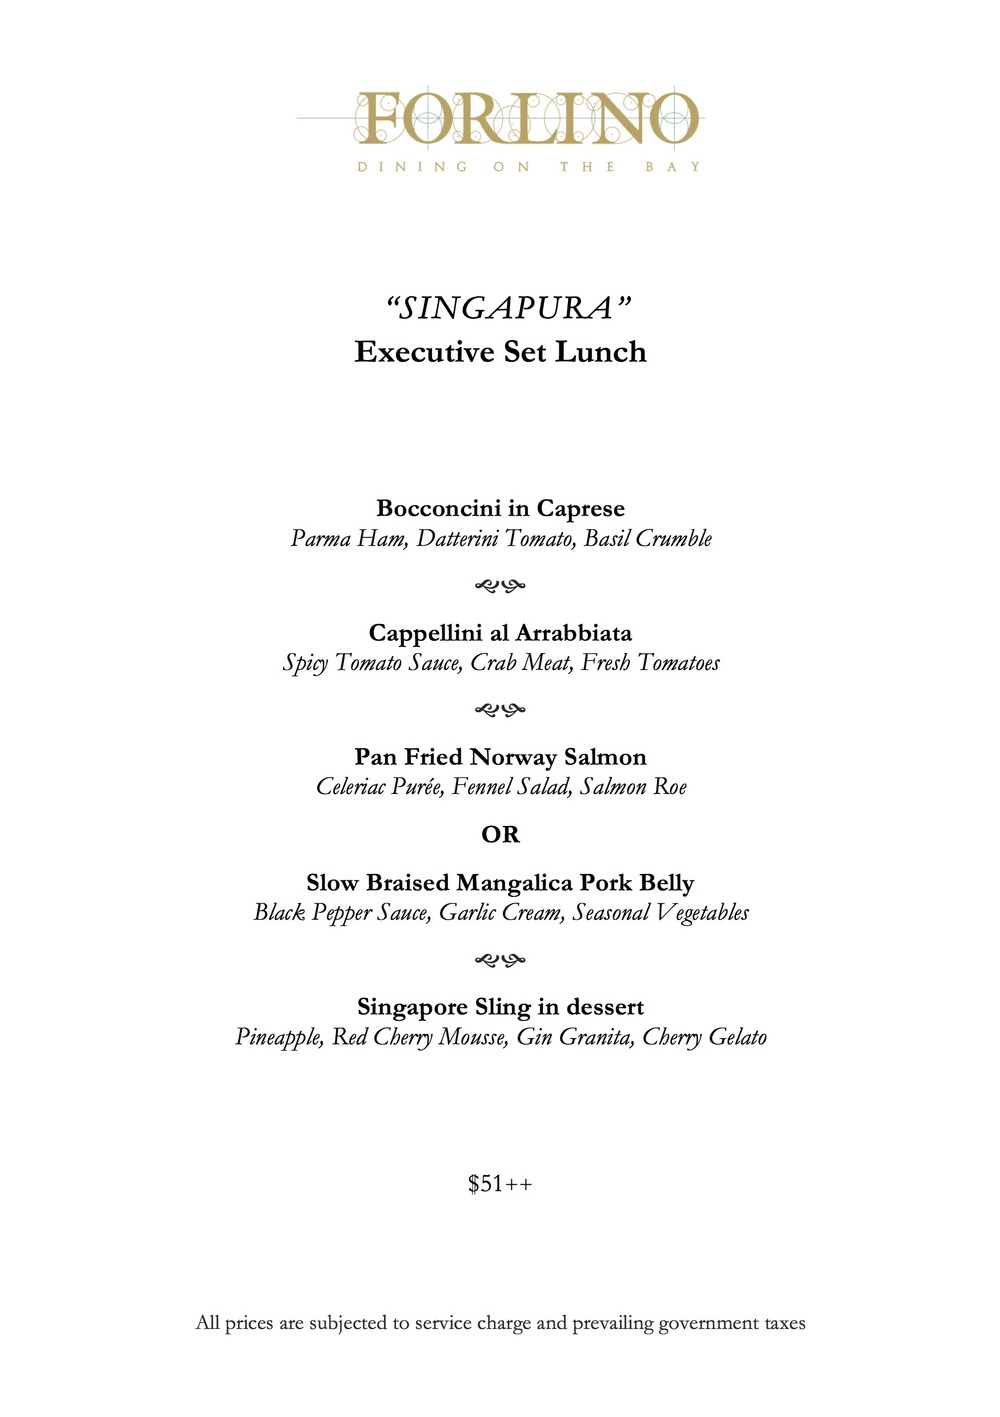 National Day Executive Set Lunch Menus 2016.jpg